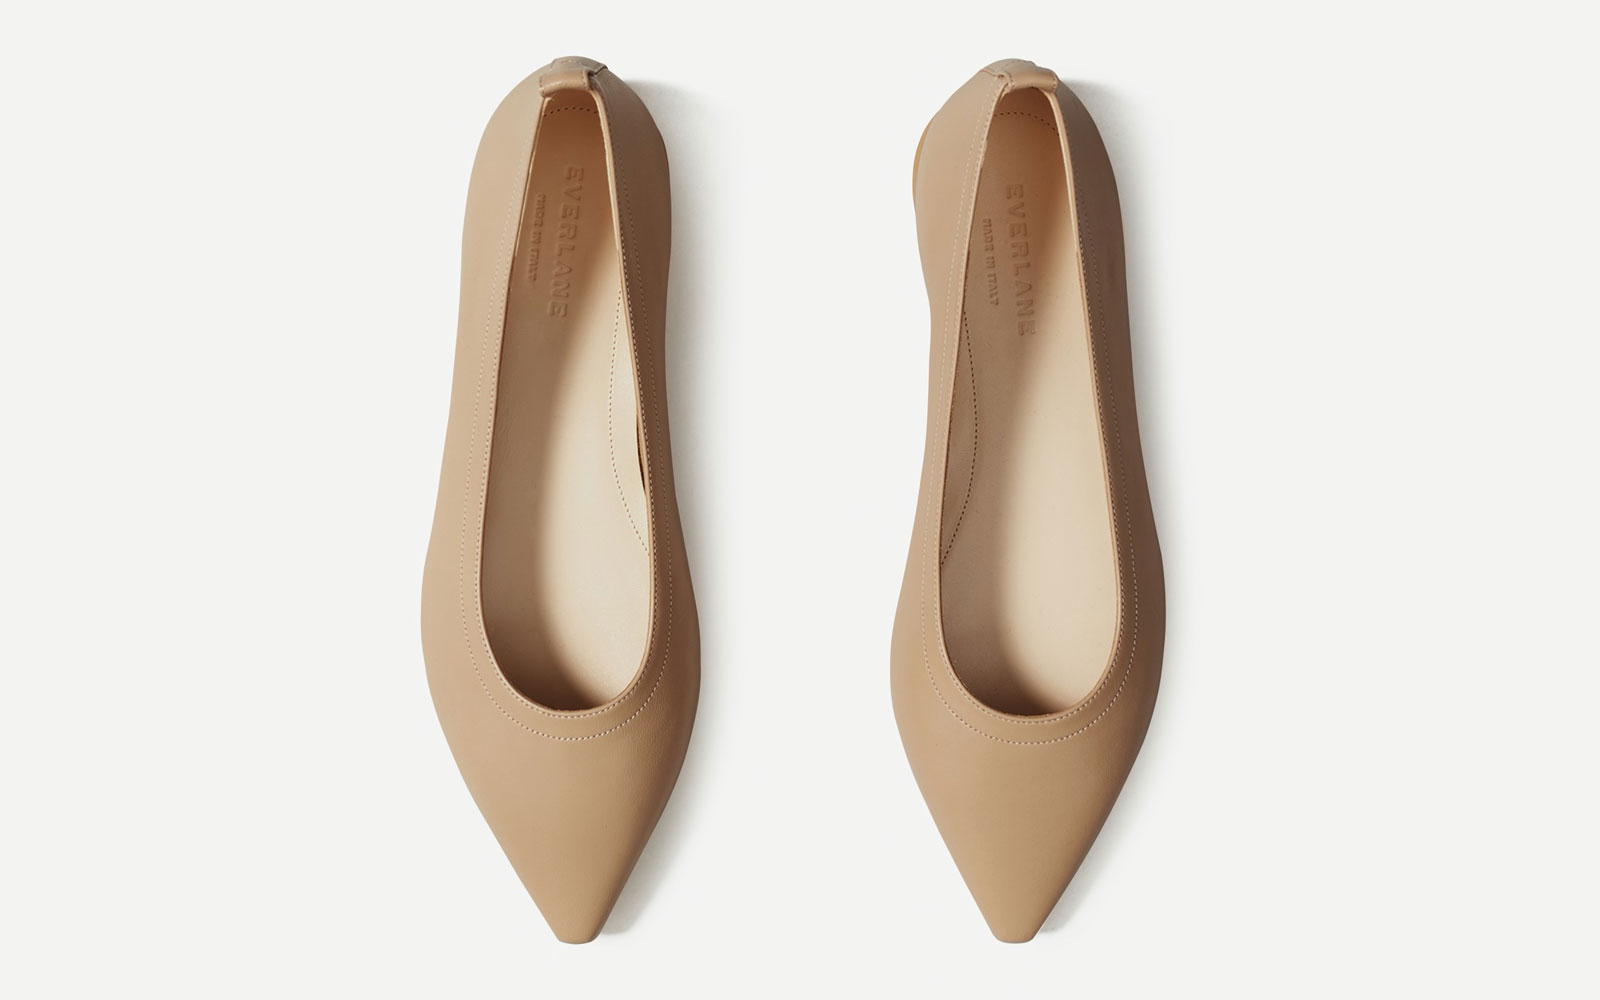 Top of Taupe Leather Flats